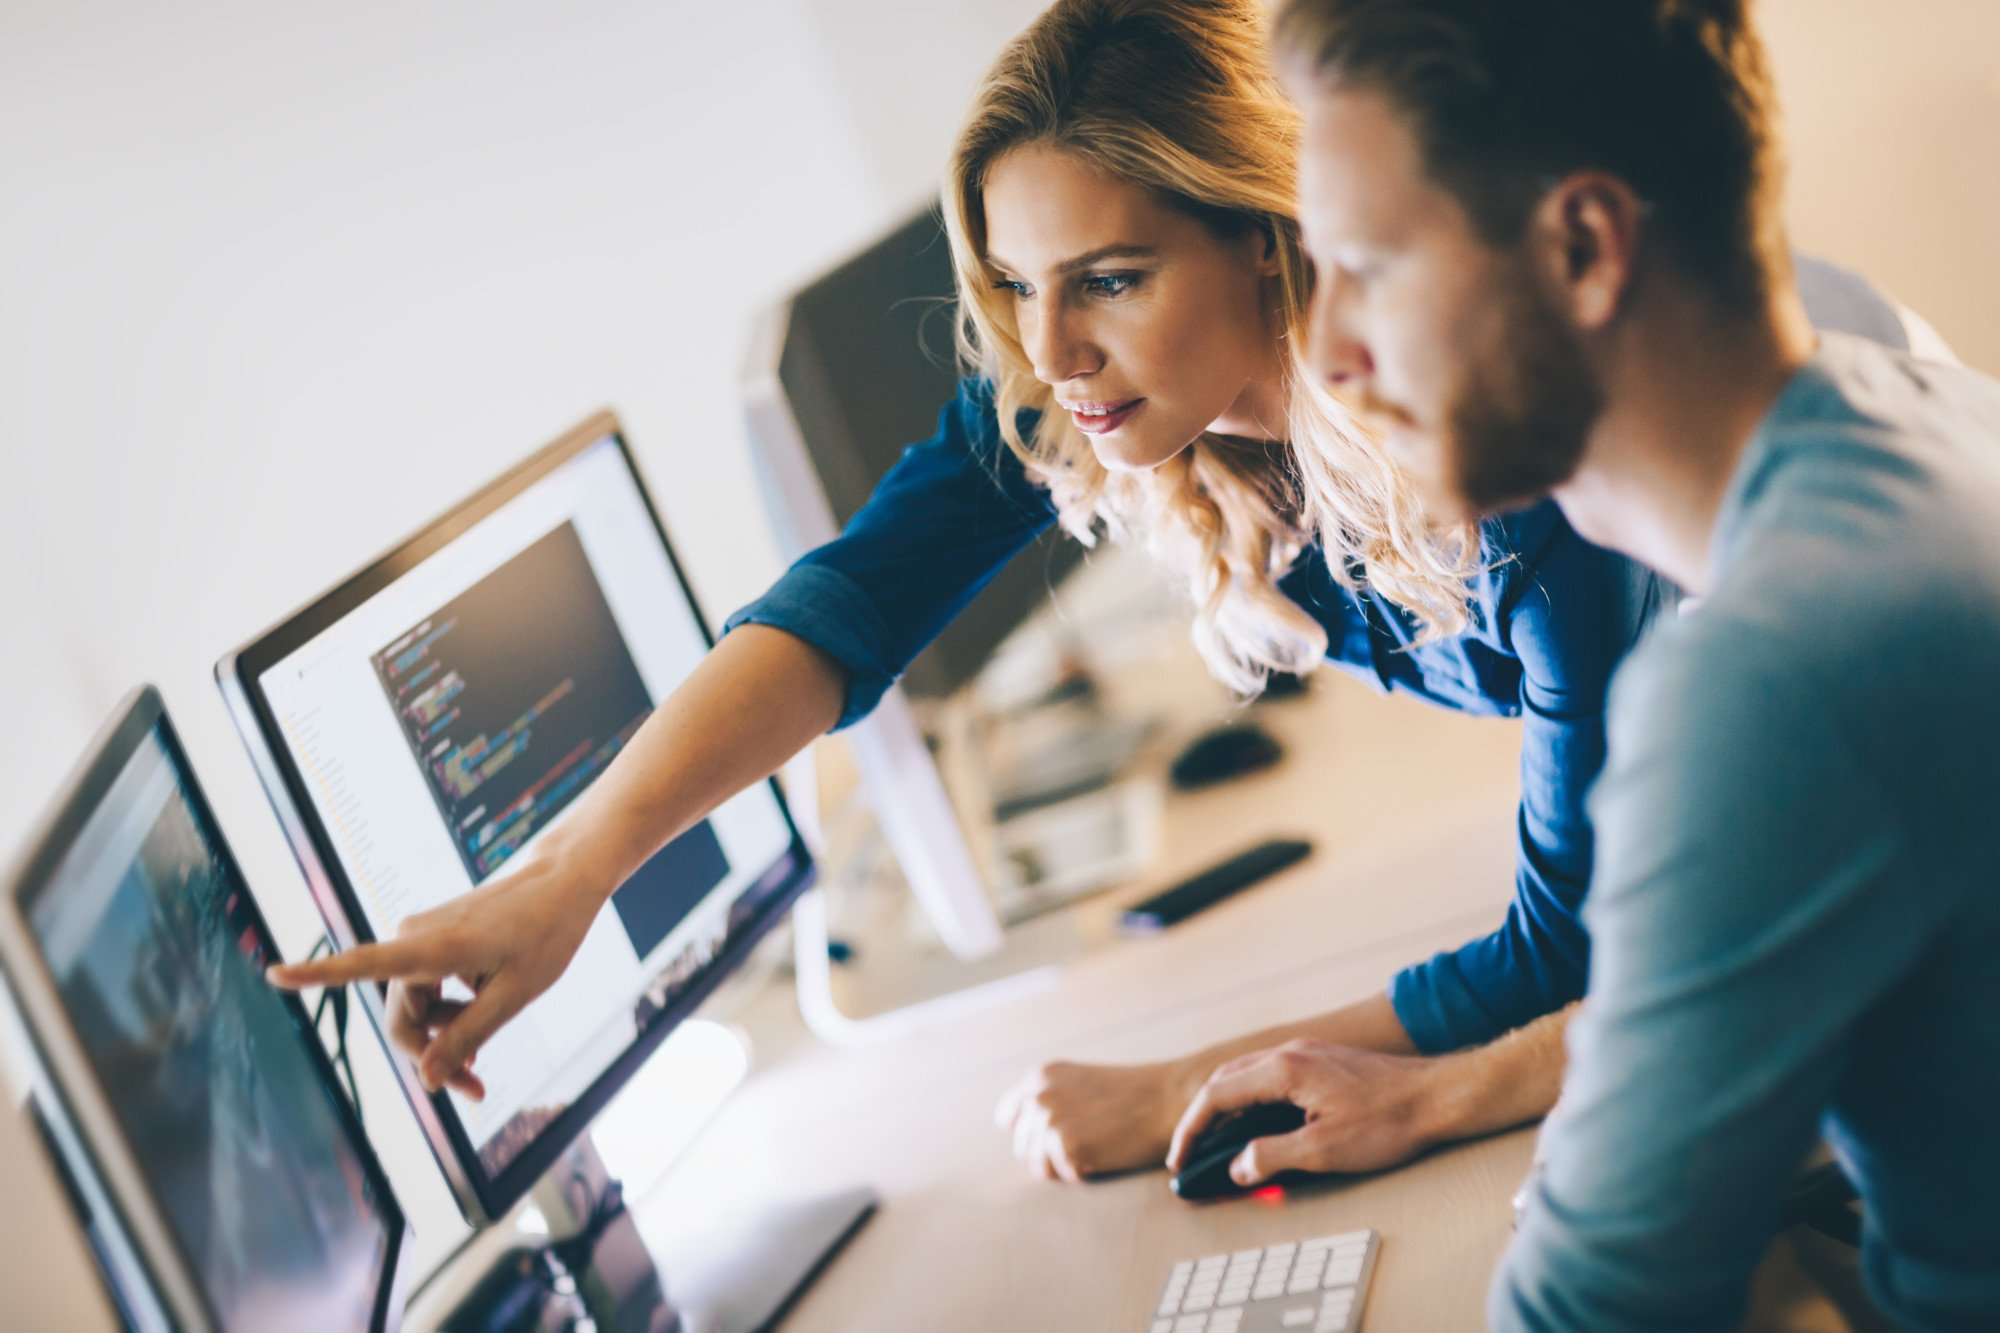 B2B sales reps using sales enablement software for marketing